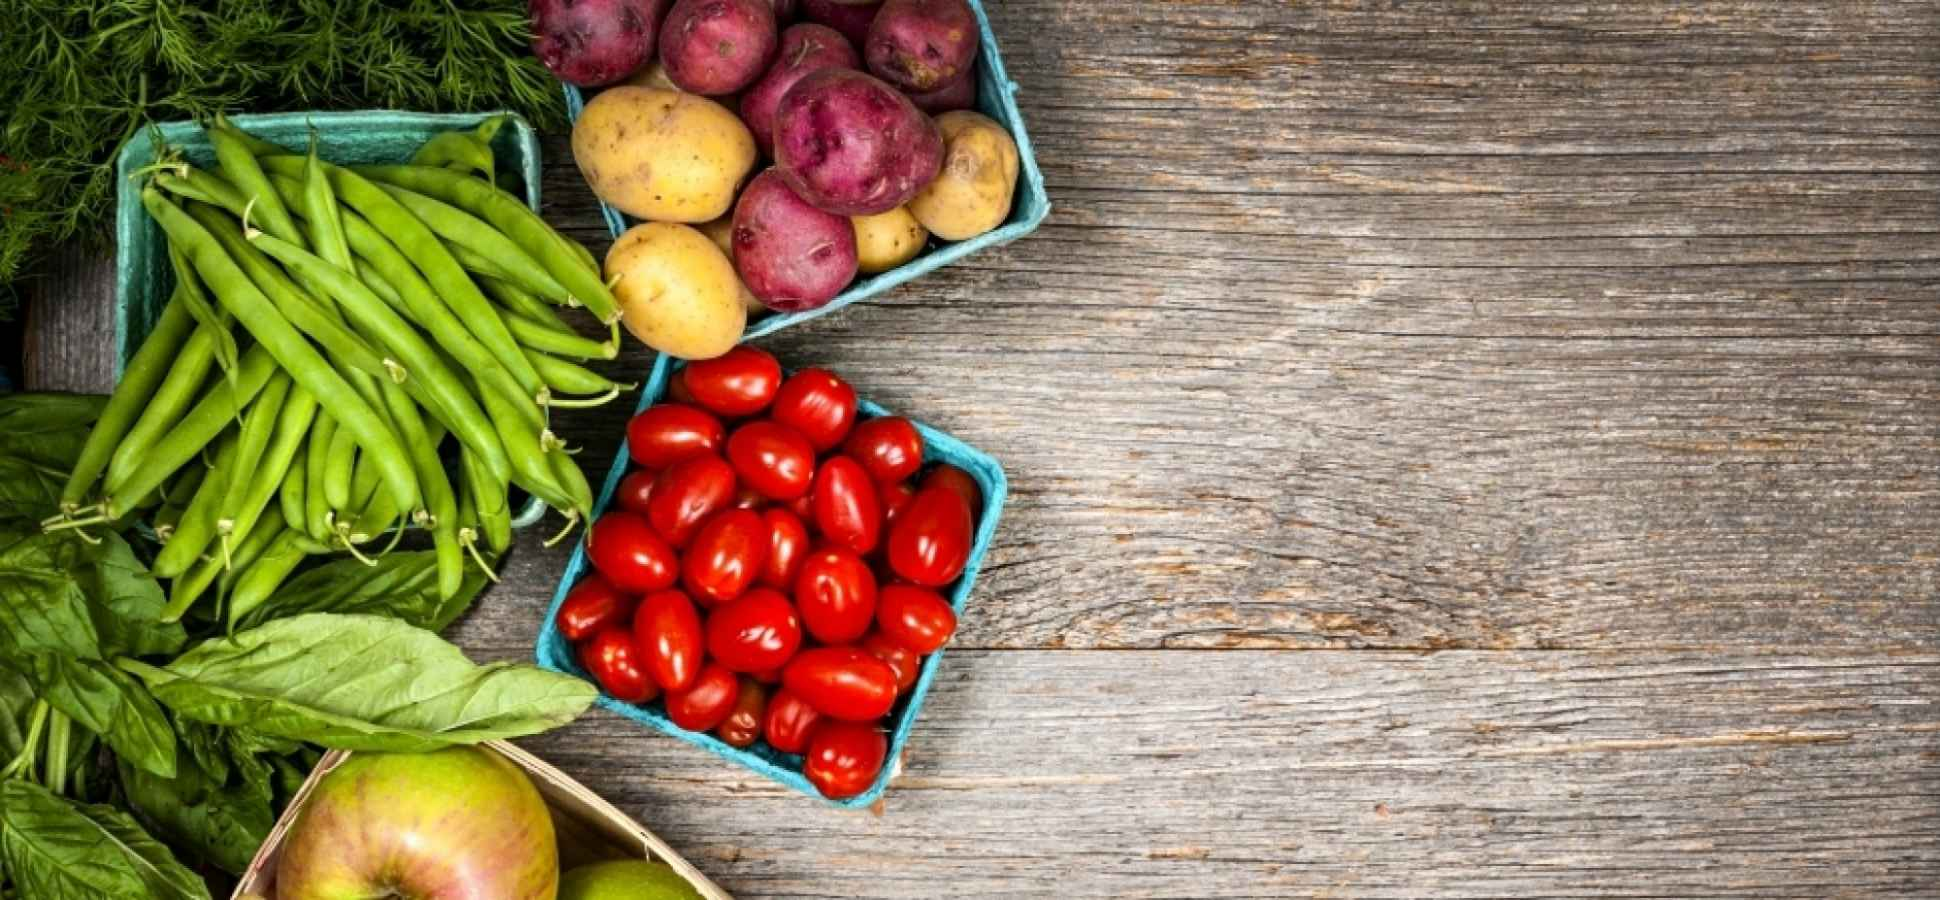 3 Ways Technology is Changing the Food Industry | Inc com